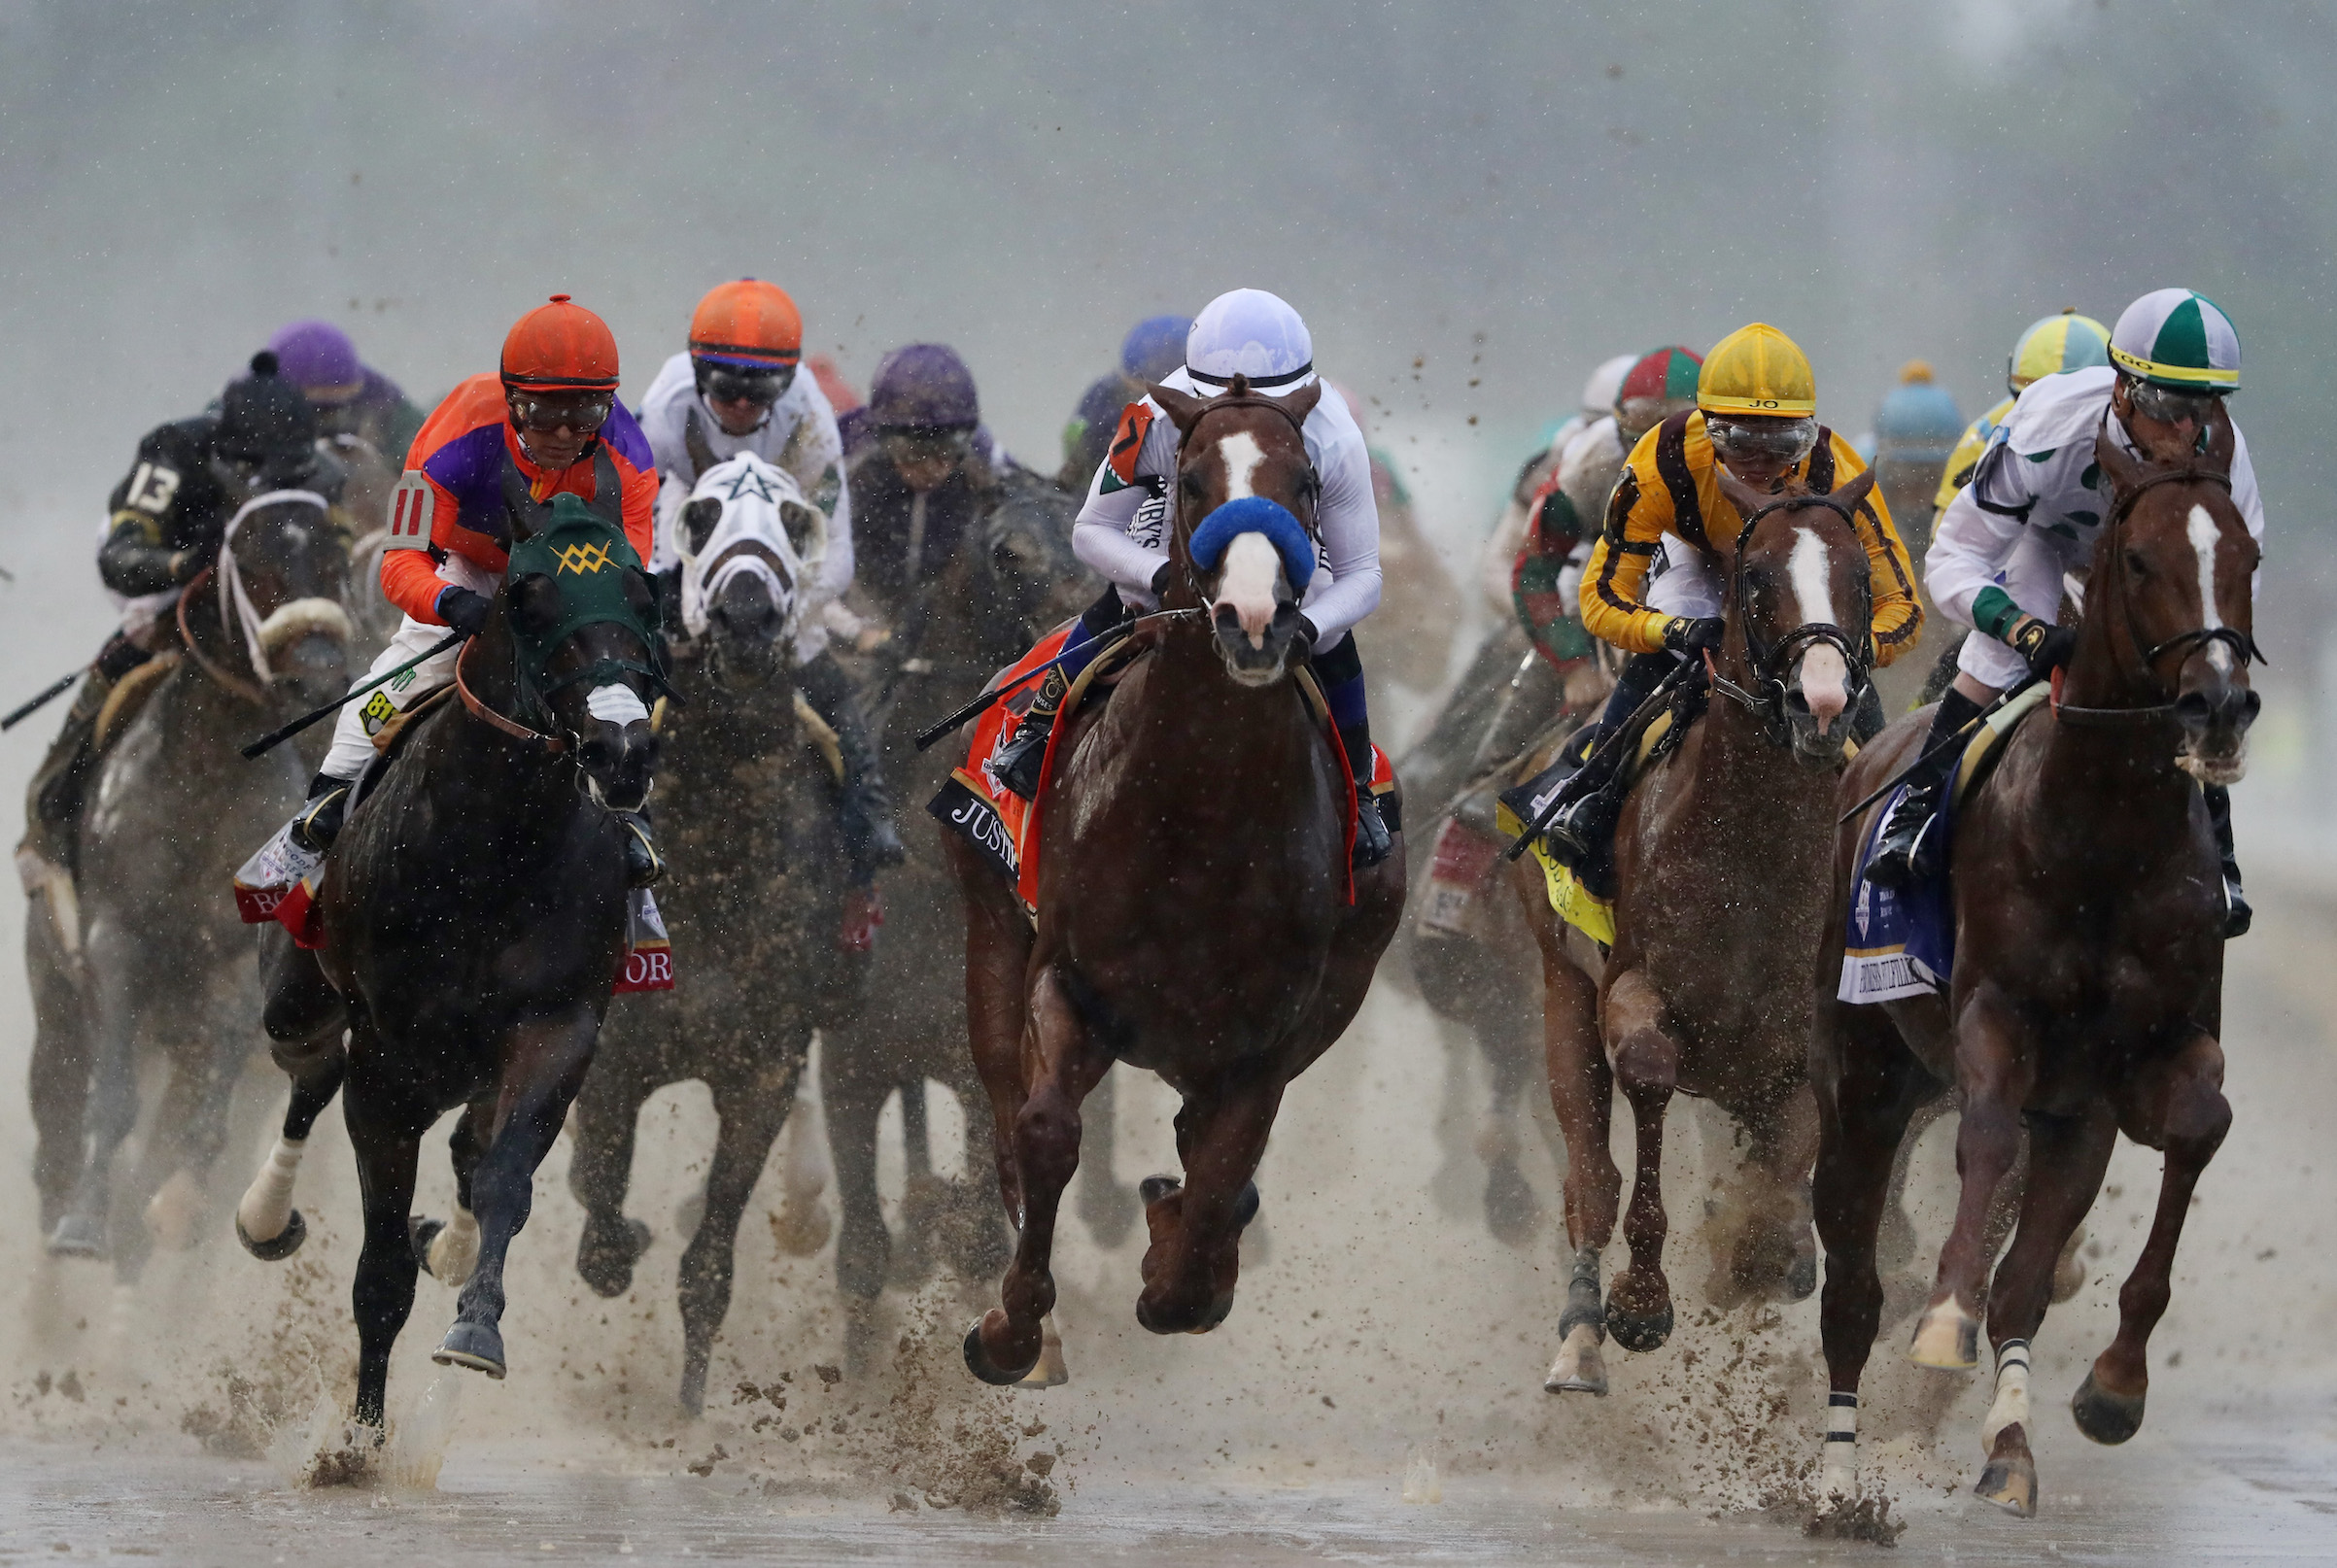 horse dead haunting Ahead World Racing Kentucky Derby. This is what is being done to stop them